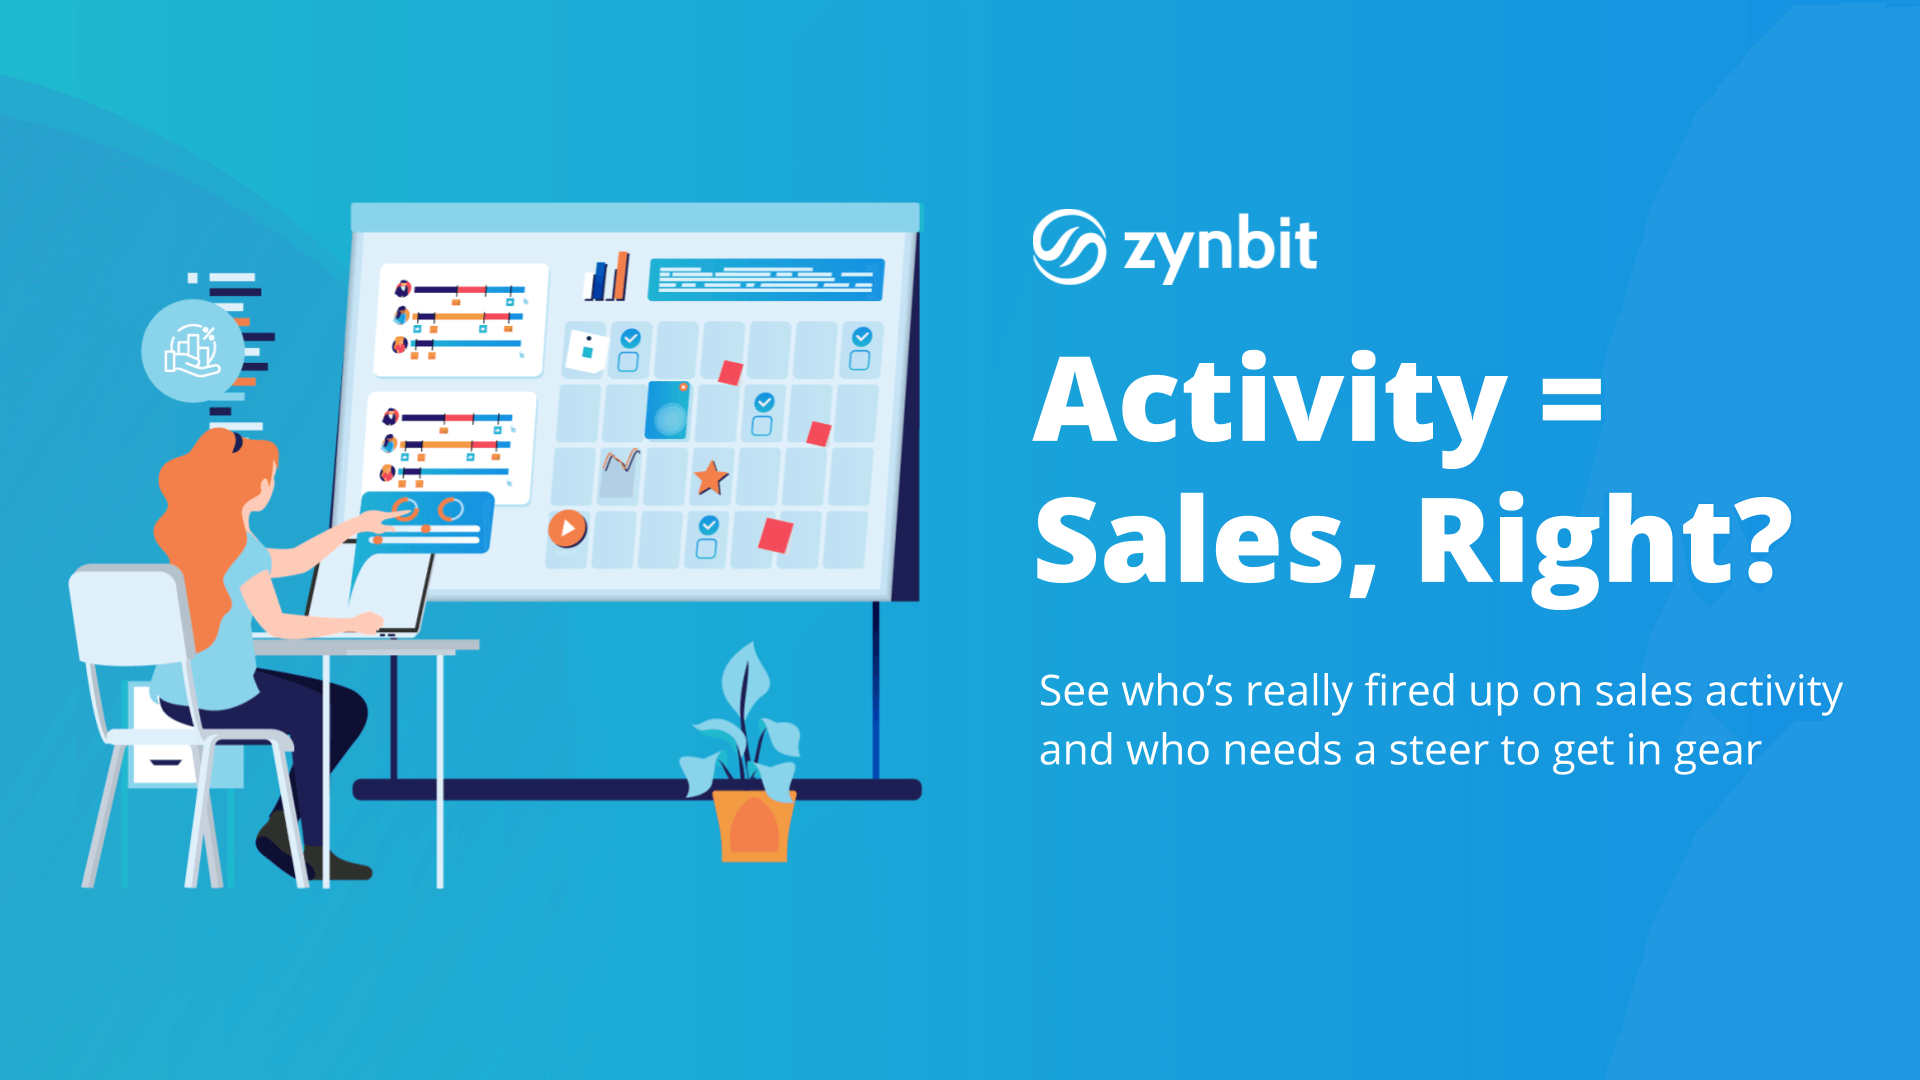 Activity = Sales, Right?